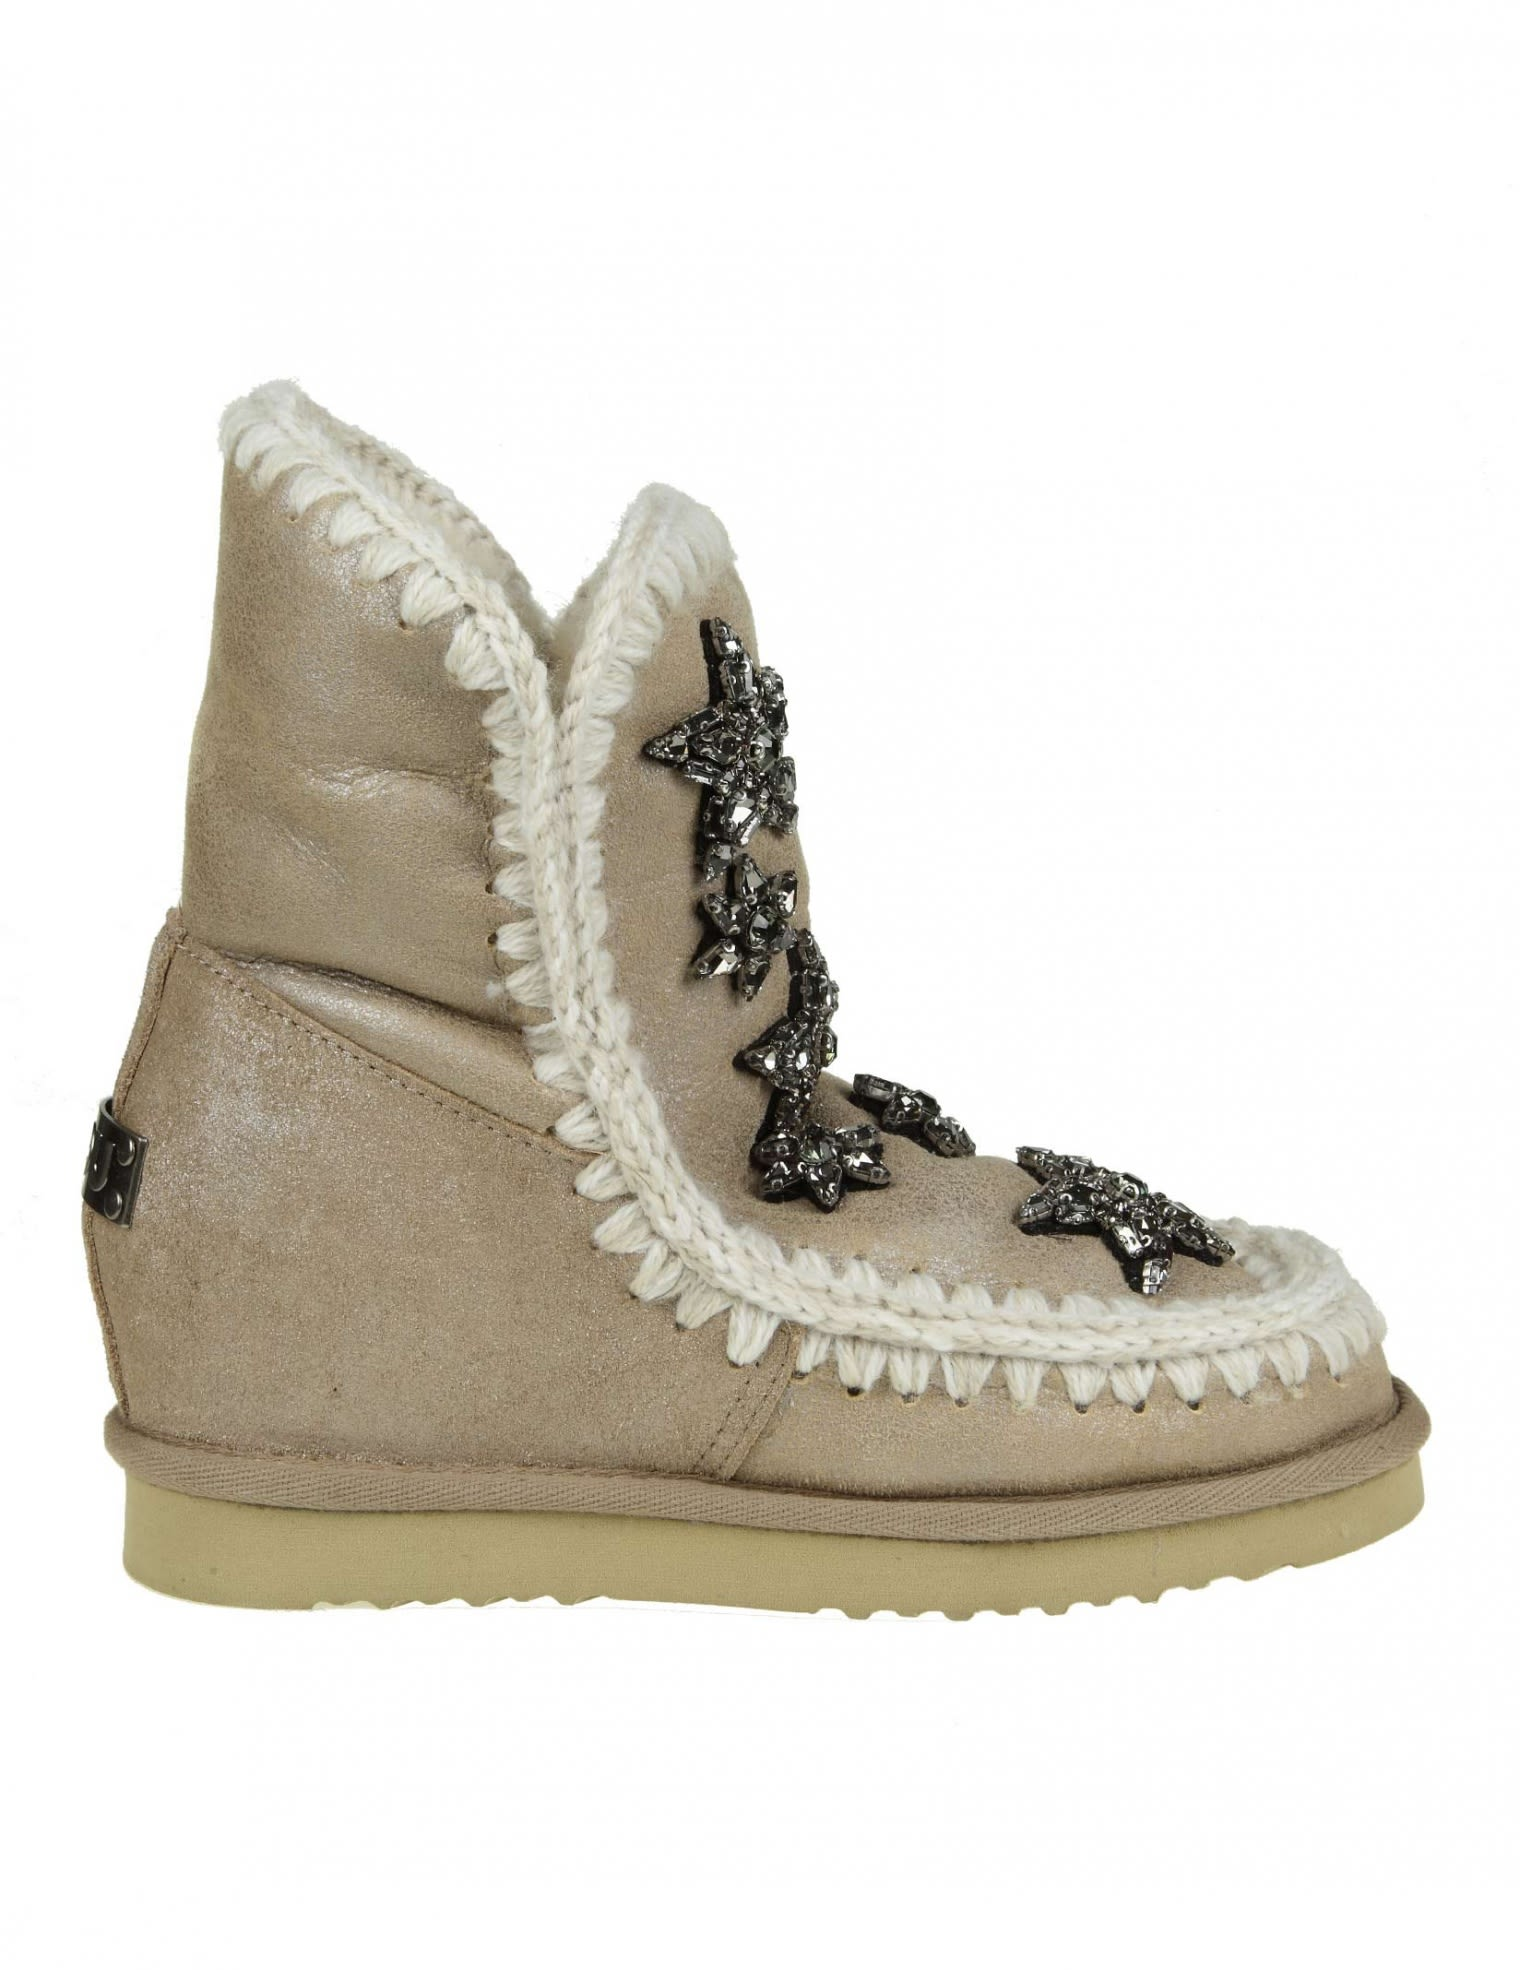 "Sneakers ""Inner Wedge"" Beige Leather With Decoration Crystal Appli, Stone"